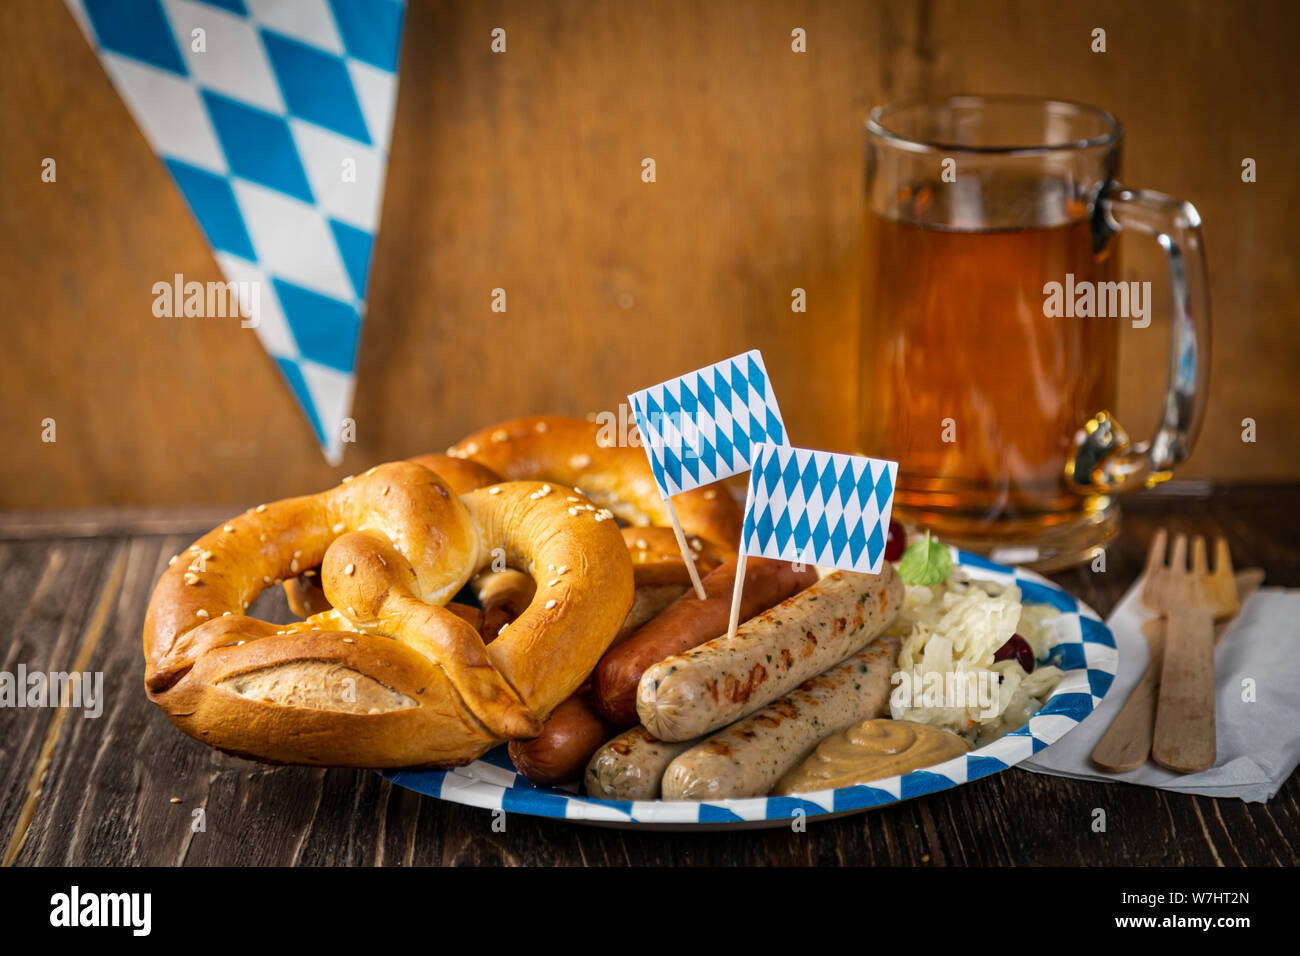 October fest concept - traditional food and beer served at event Stock Photo